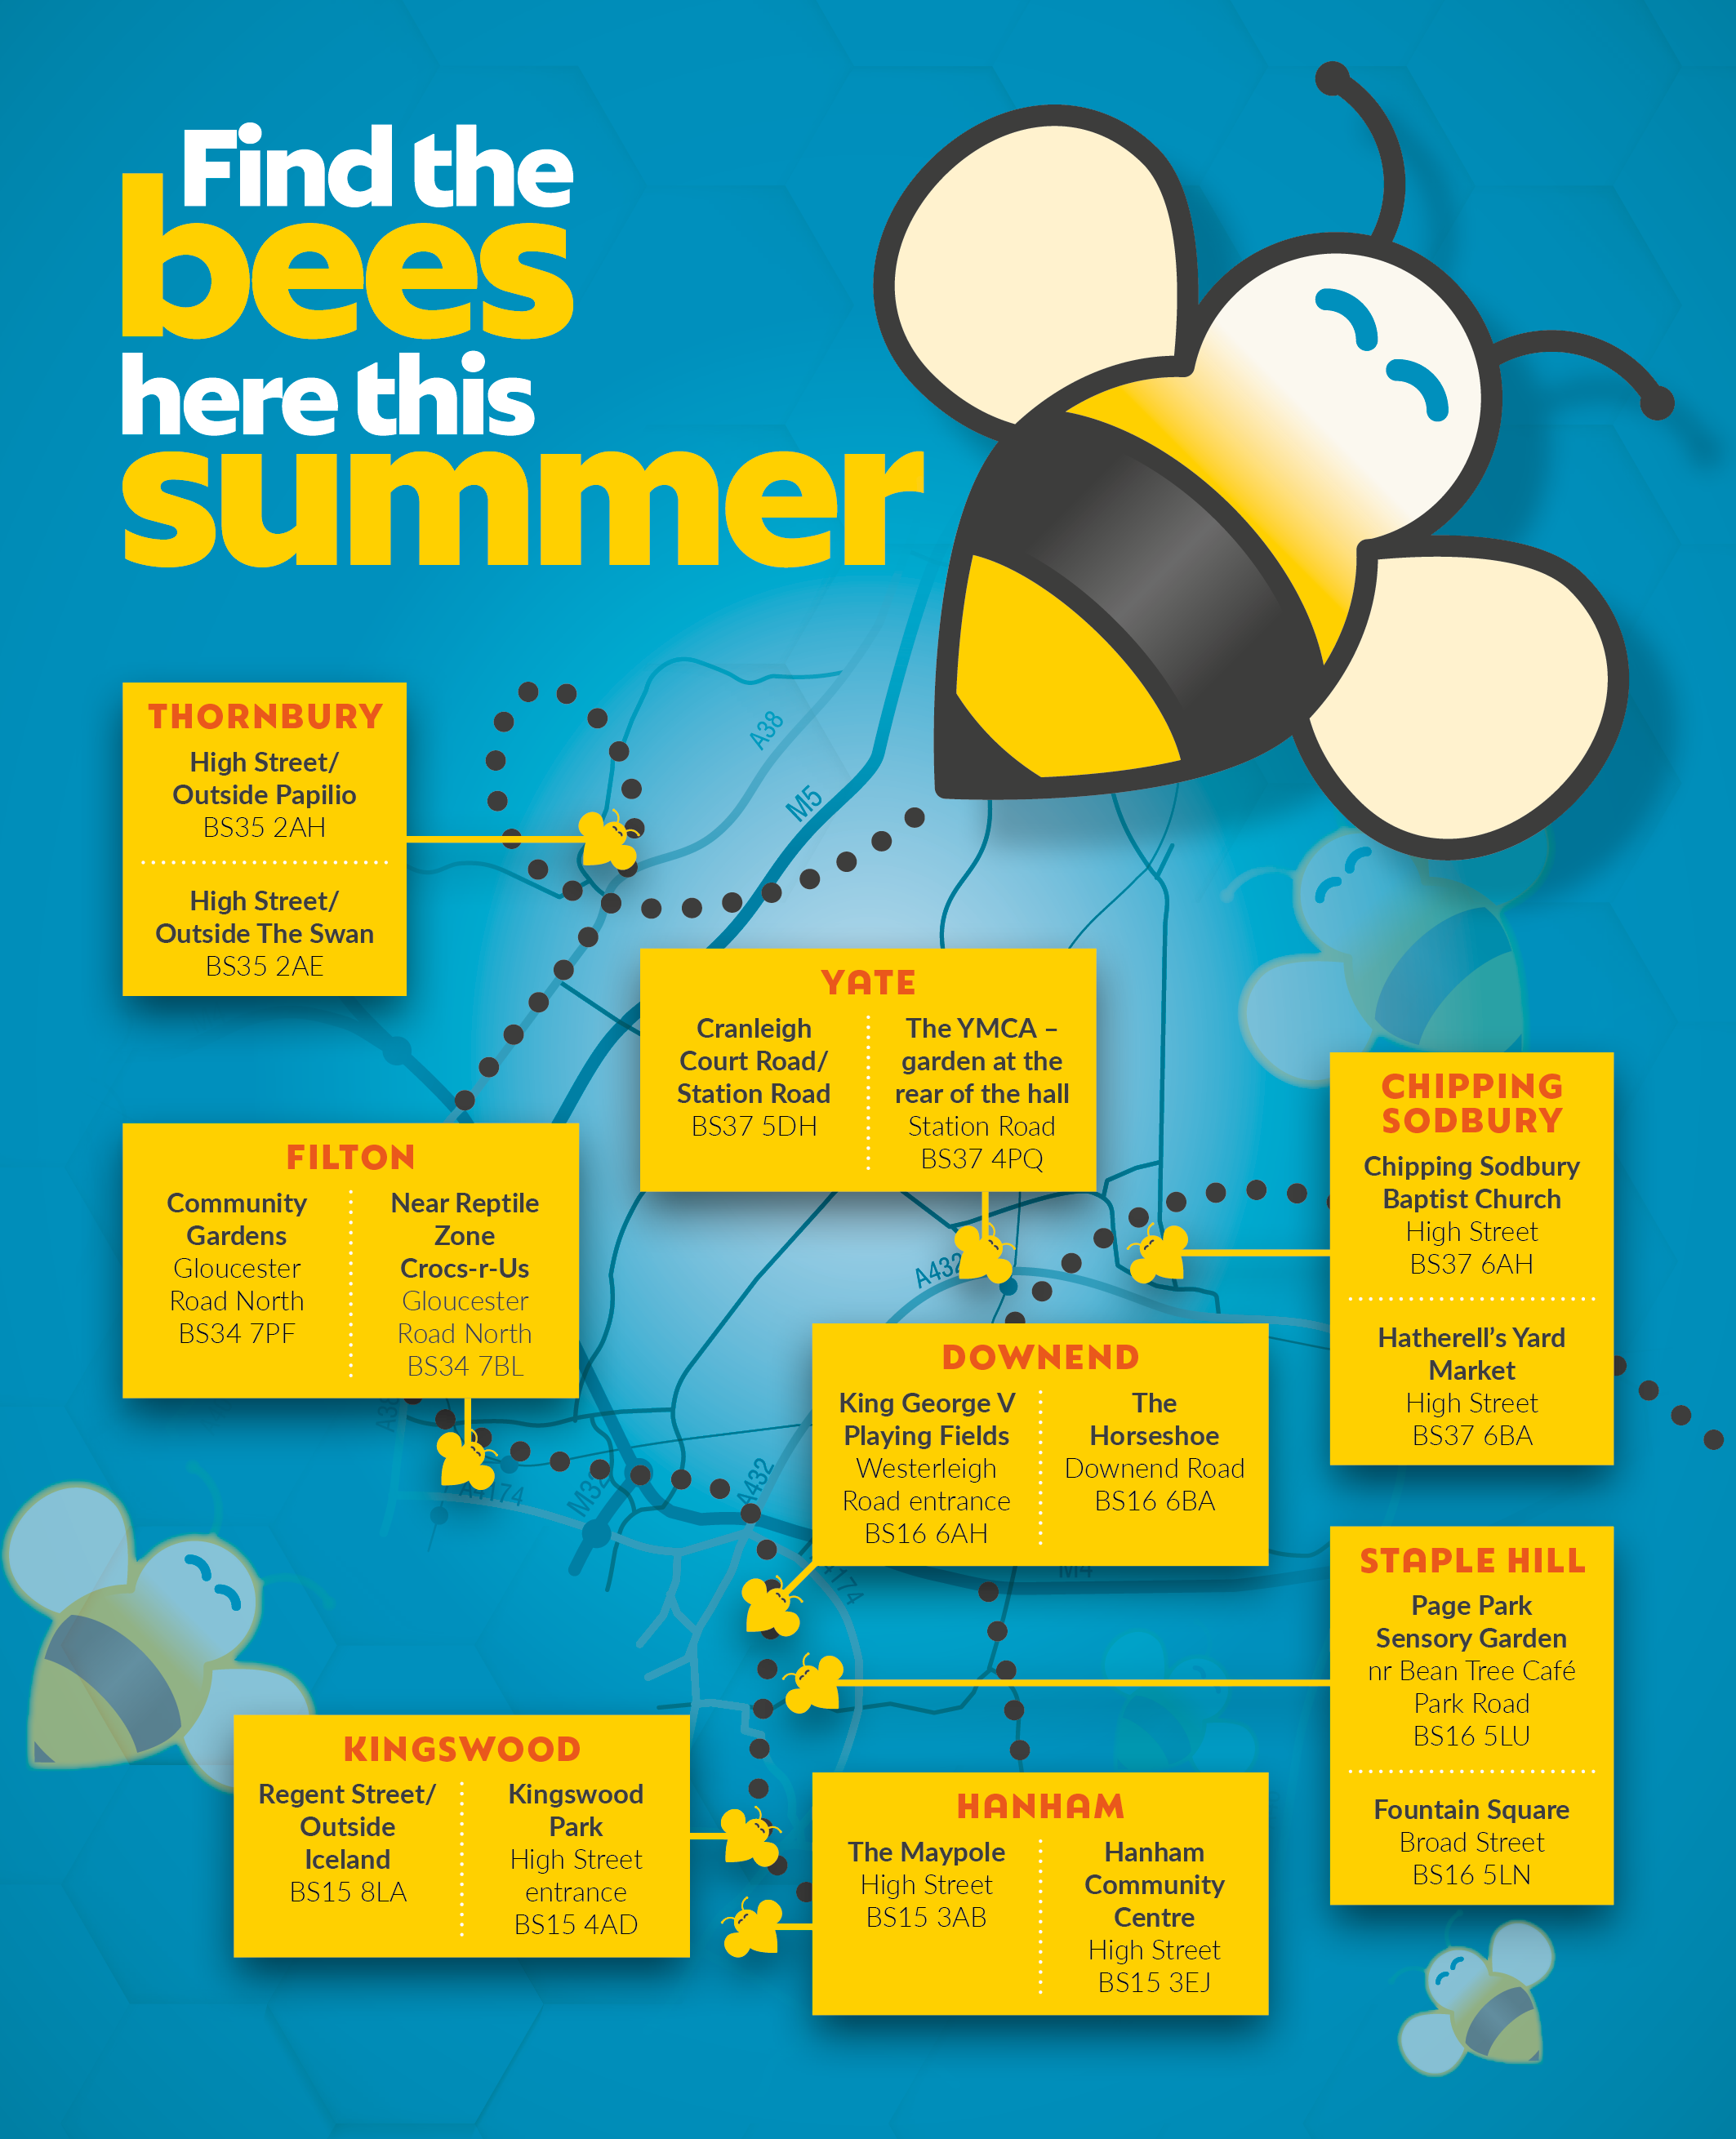 Find the bees here this summer:  Thornbury High Street/Castle Street, BS35 2AQ and High Street/Chapel Street, BS35 2AN  Yate Cranleigh Court Road/Station Road BS37 5DH  Filton Community Gardens, Gloucester Road North, BS34 7PF Church Road/Gloucester Road, BS34 7BQ  Downend, King George Playing Fields, Westerleigh Road, BS16 6AH The Horseshoe, Downend Road, BS16 6BA  Chipping Sodbury, St John Church, Wickwar Road, BS37 6BQ  Staple Hill, Page Park, Park Road, BS16 5LU and Fountain Square, Broad Street, BS16 5LN  Kingswood, Kingschase Shopping Centre, Regent Street, BS15 8LP and Kingswood Park, High Street, BS15 4AD  Hanham, The Maypole, High Street, BS15 3AB and Laburnum Road Car Park, BS15 3DU  Note high streets with one location are awaiting confirmation of their second bee landing location.